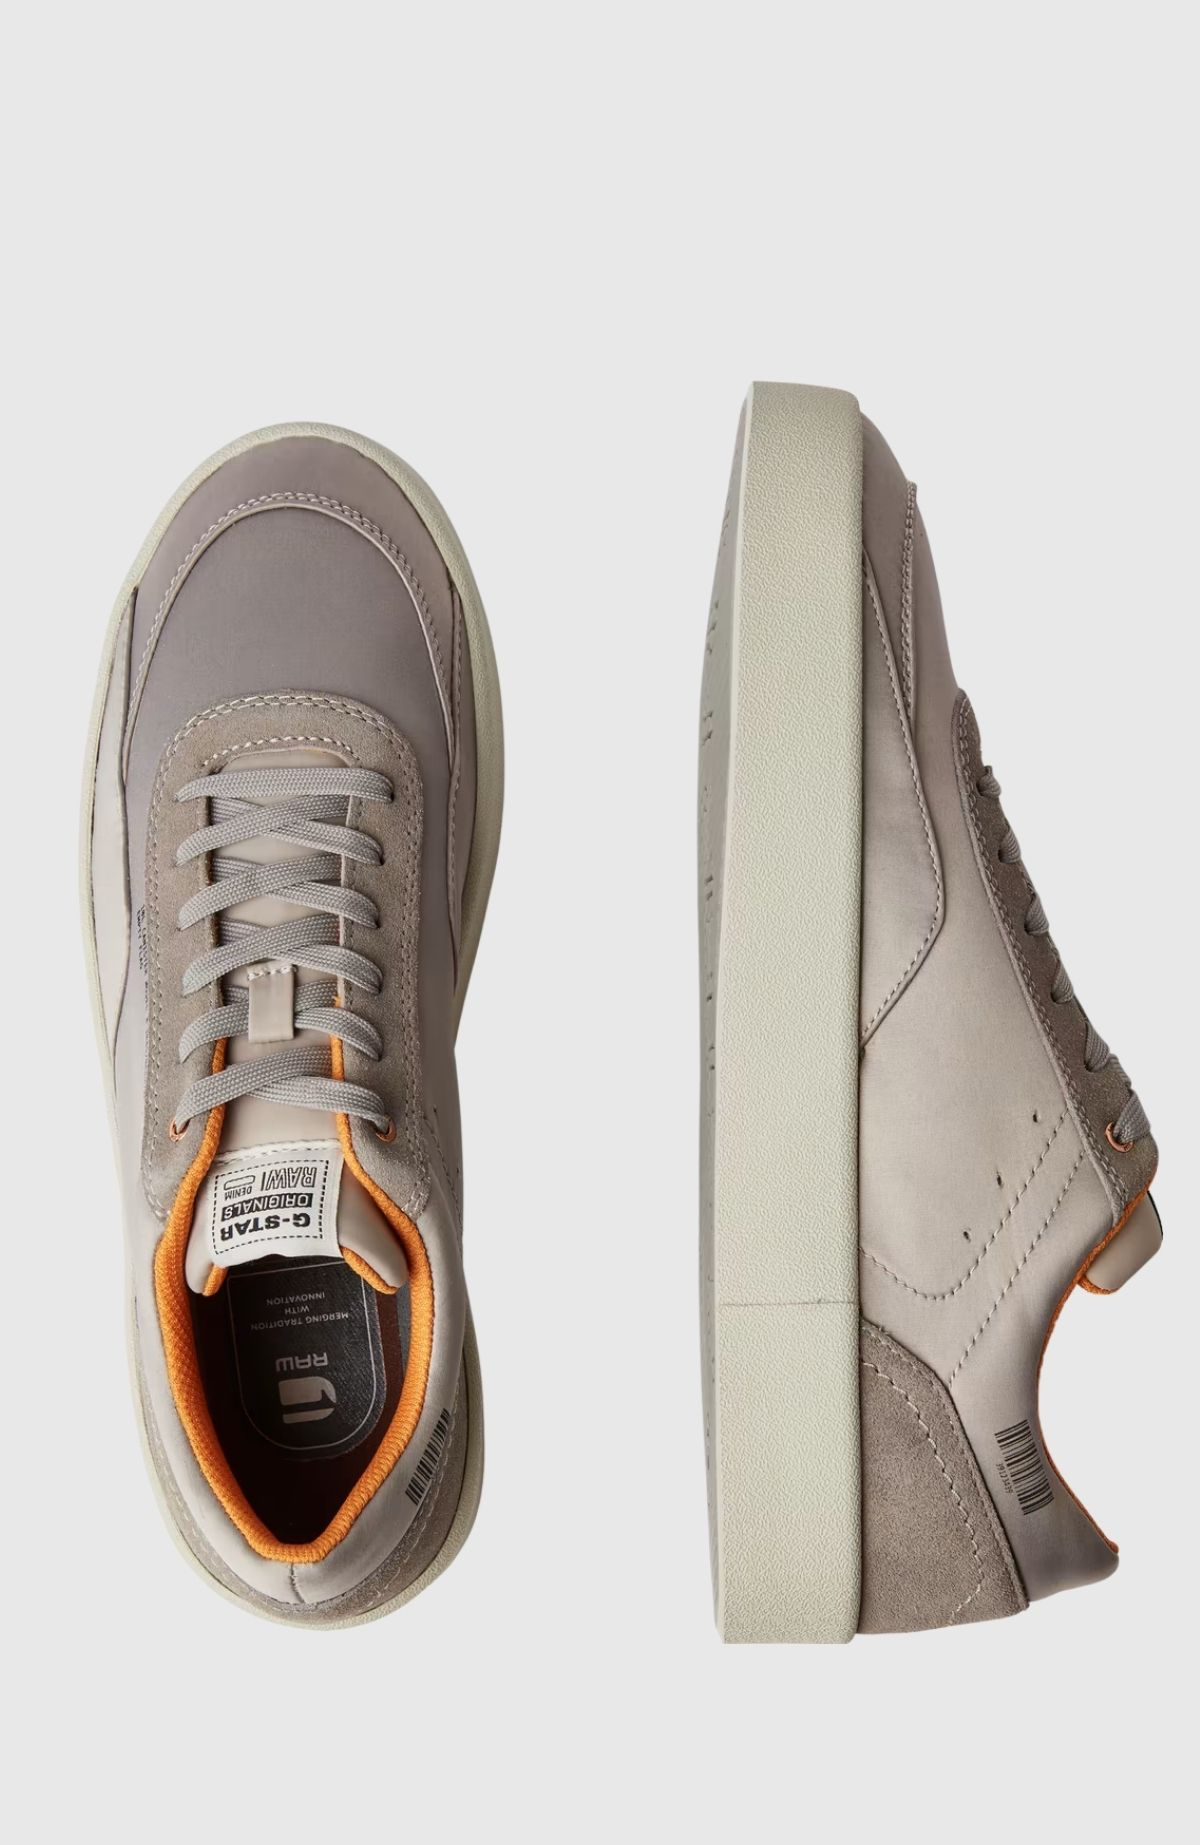 Tect Pro Q2 Sneakers